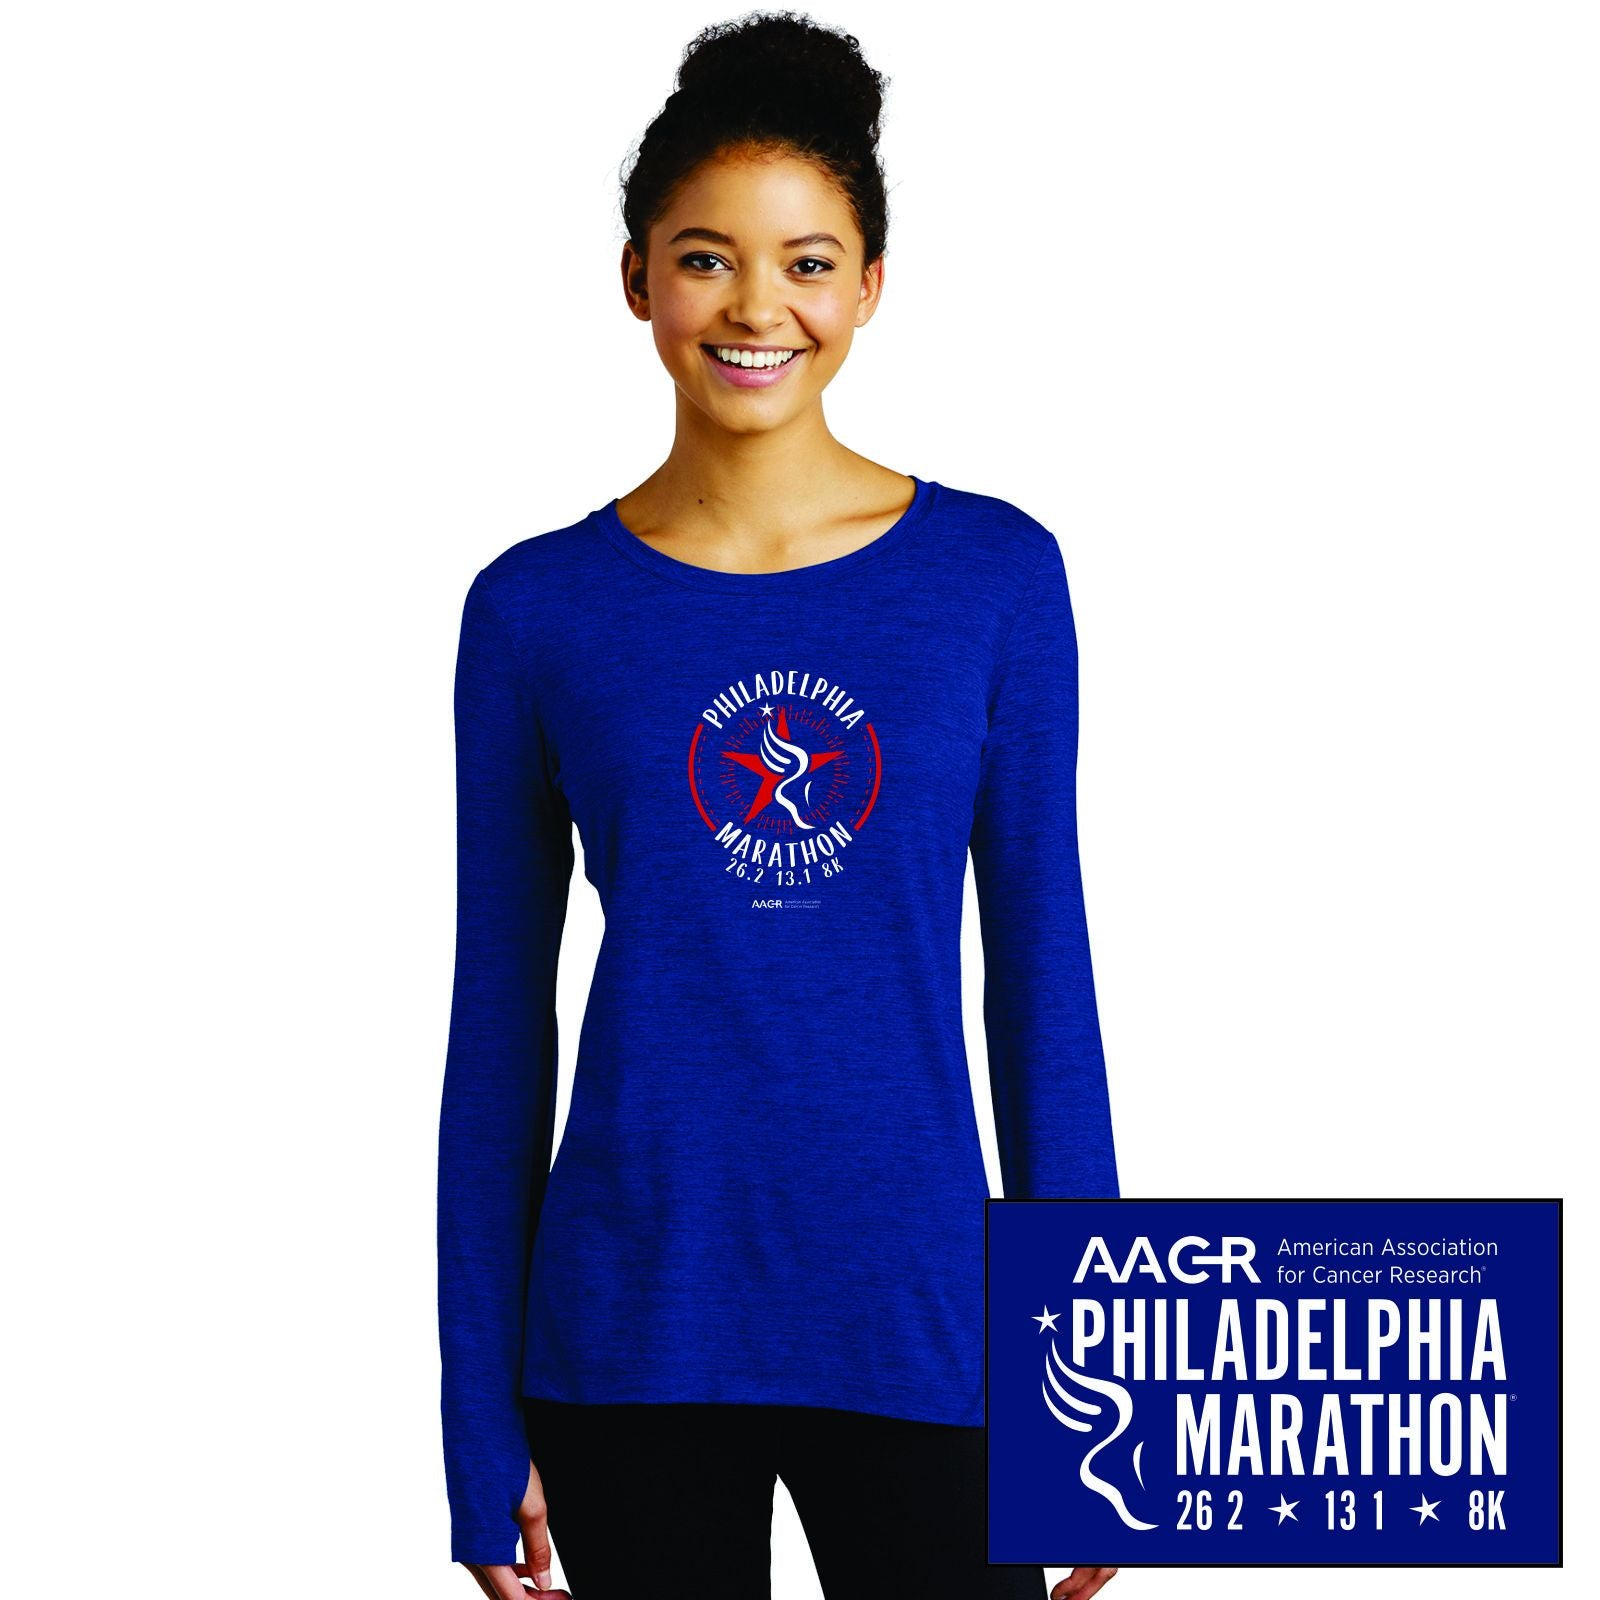 Women's LS Thumbhole Tee - True Royal Heather 'Round' Design - AACR Philadelphia Marathon